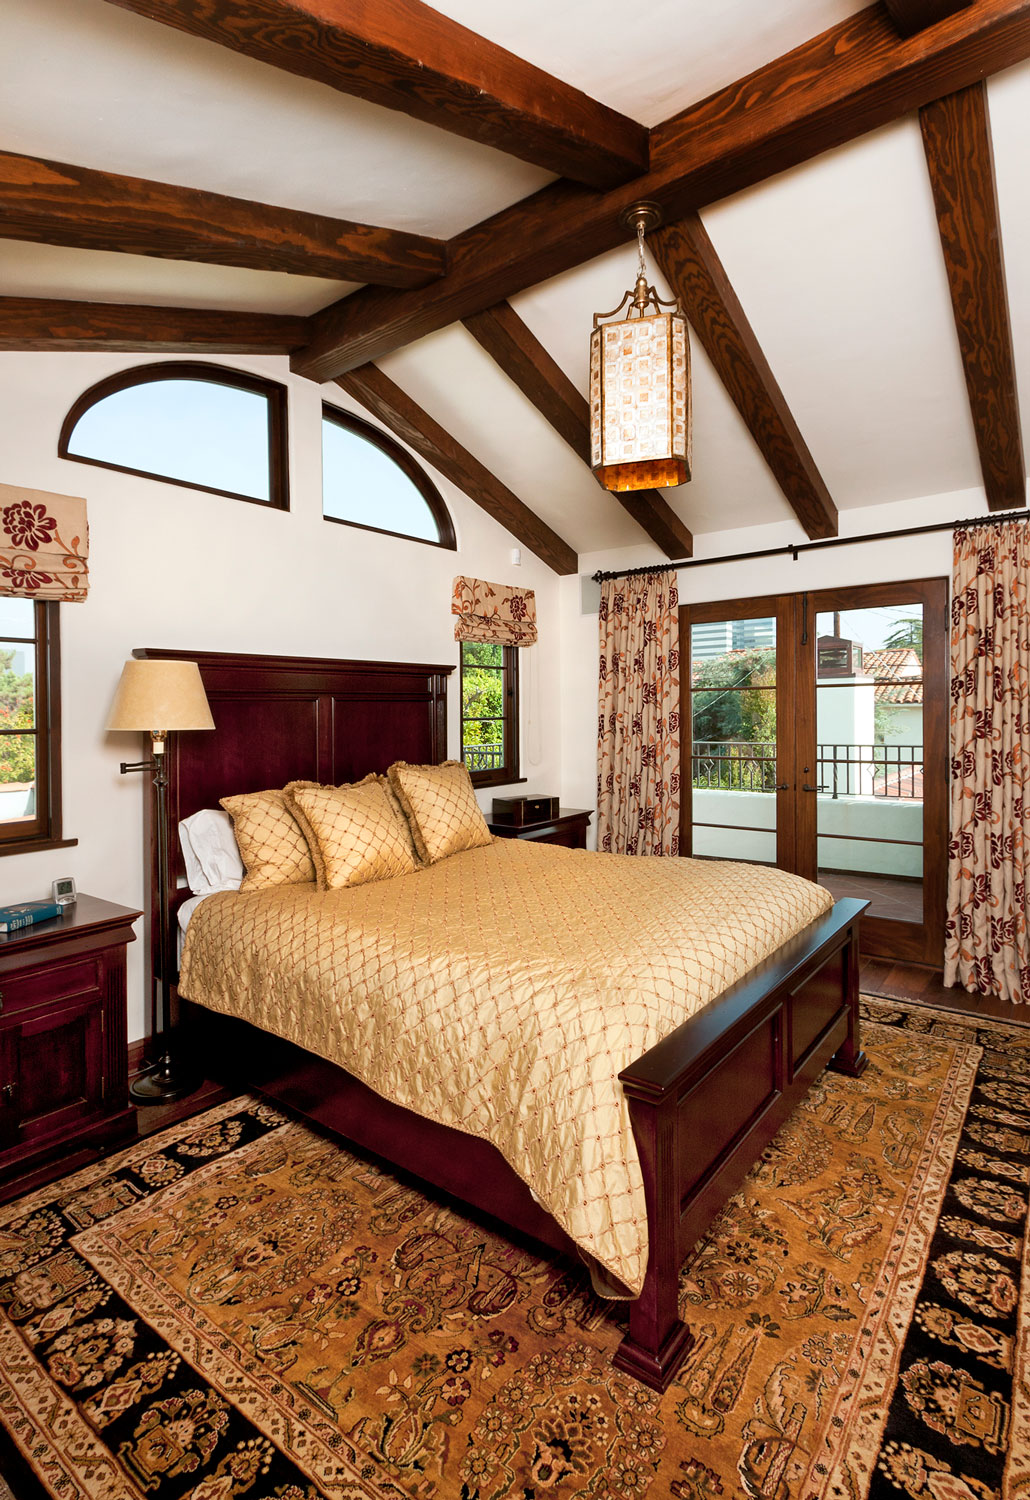 11-spanish-style-master-bedroom-beamed-ceiling-gary-drake-general-contractor.jpg